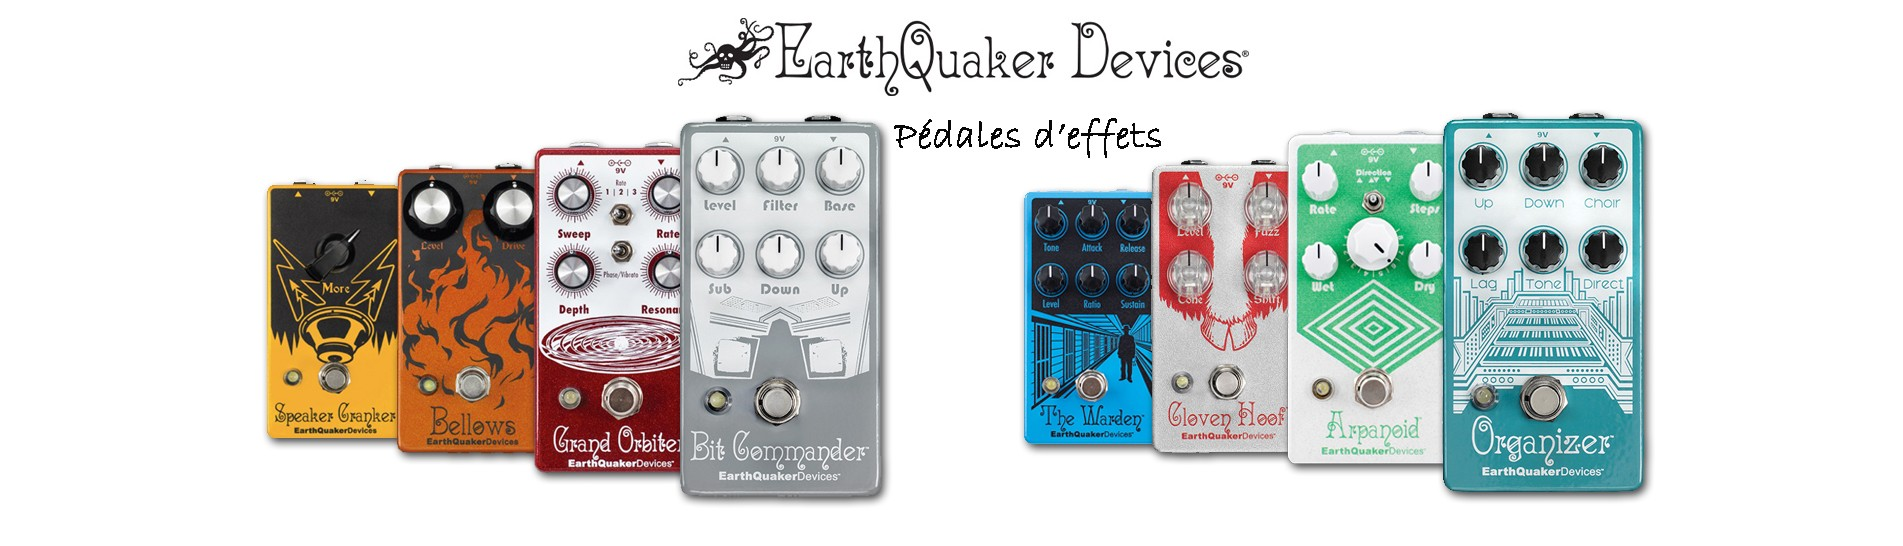 Pédales d'effets EARTHQUAKER DEVICES